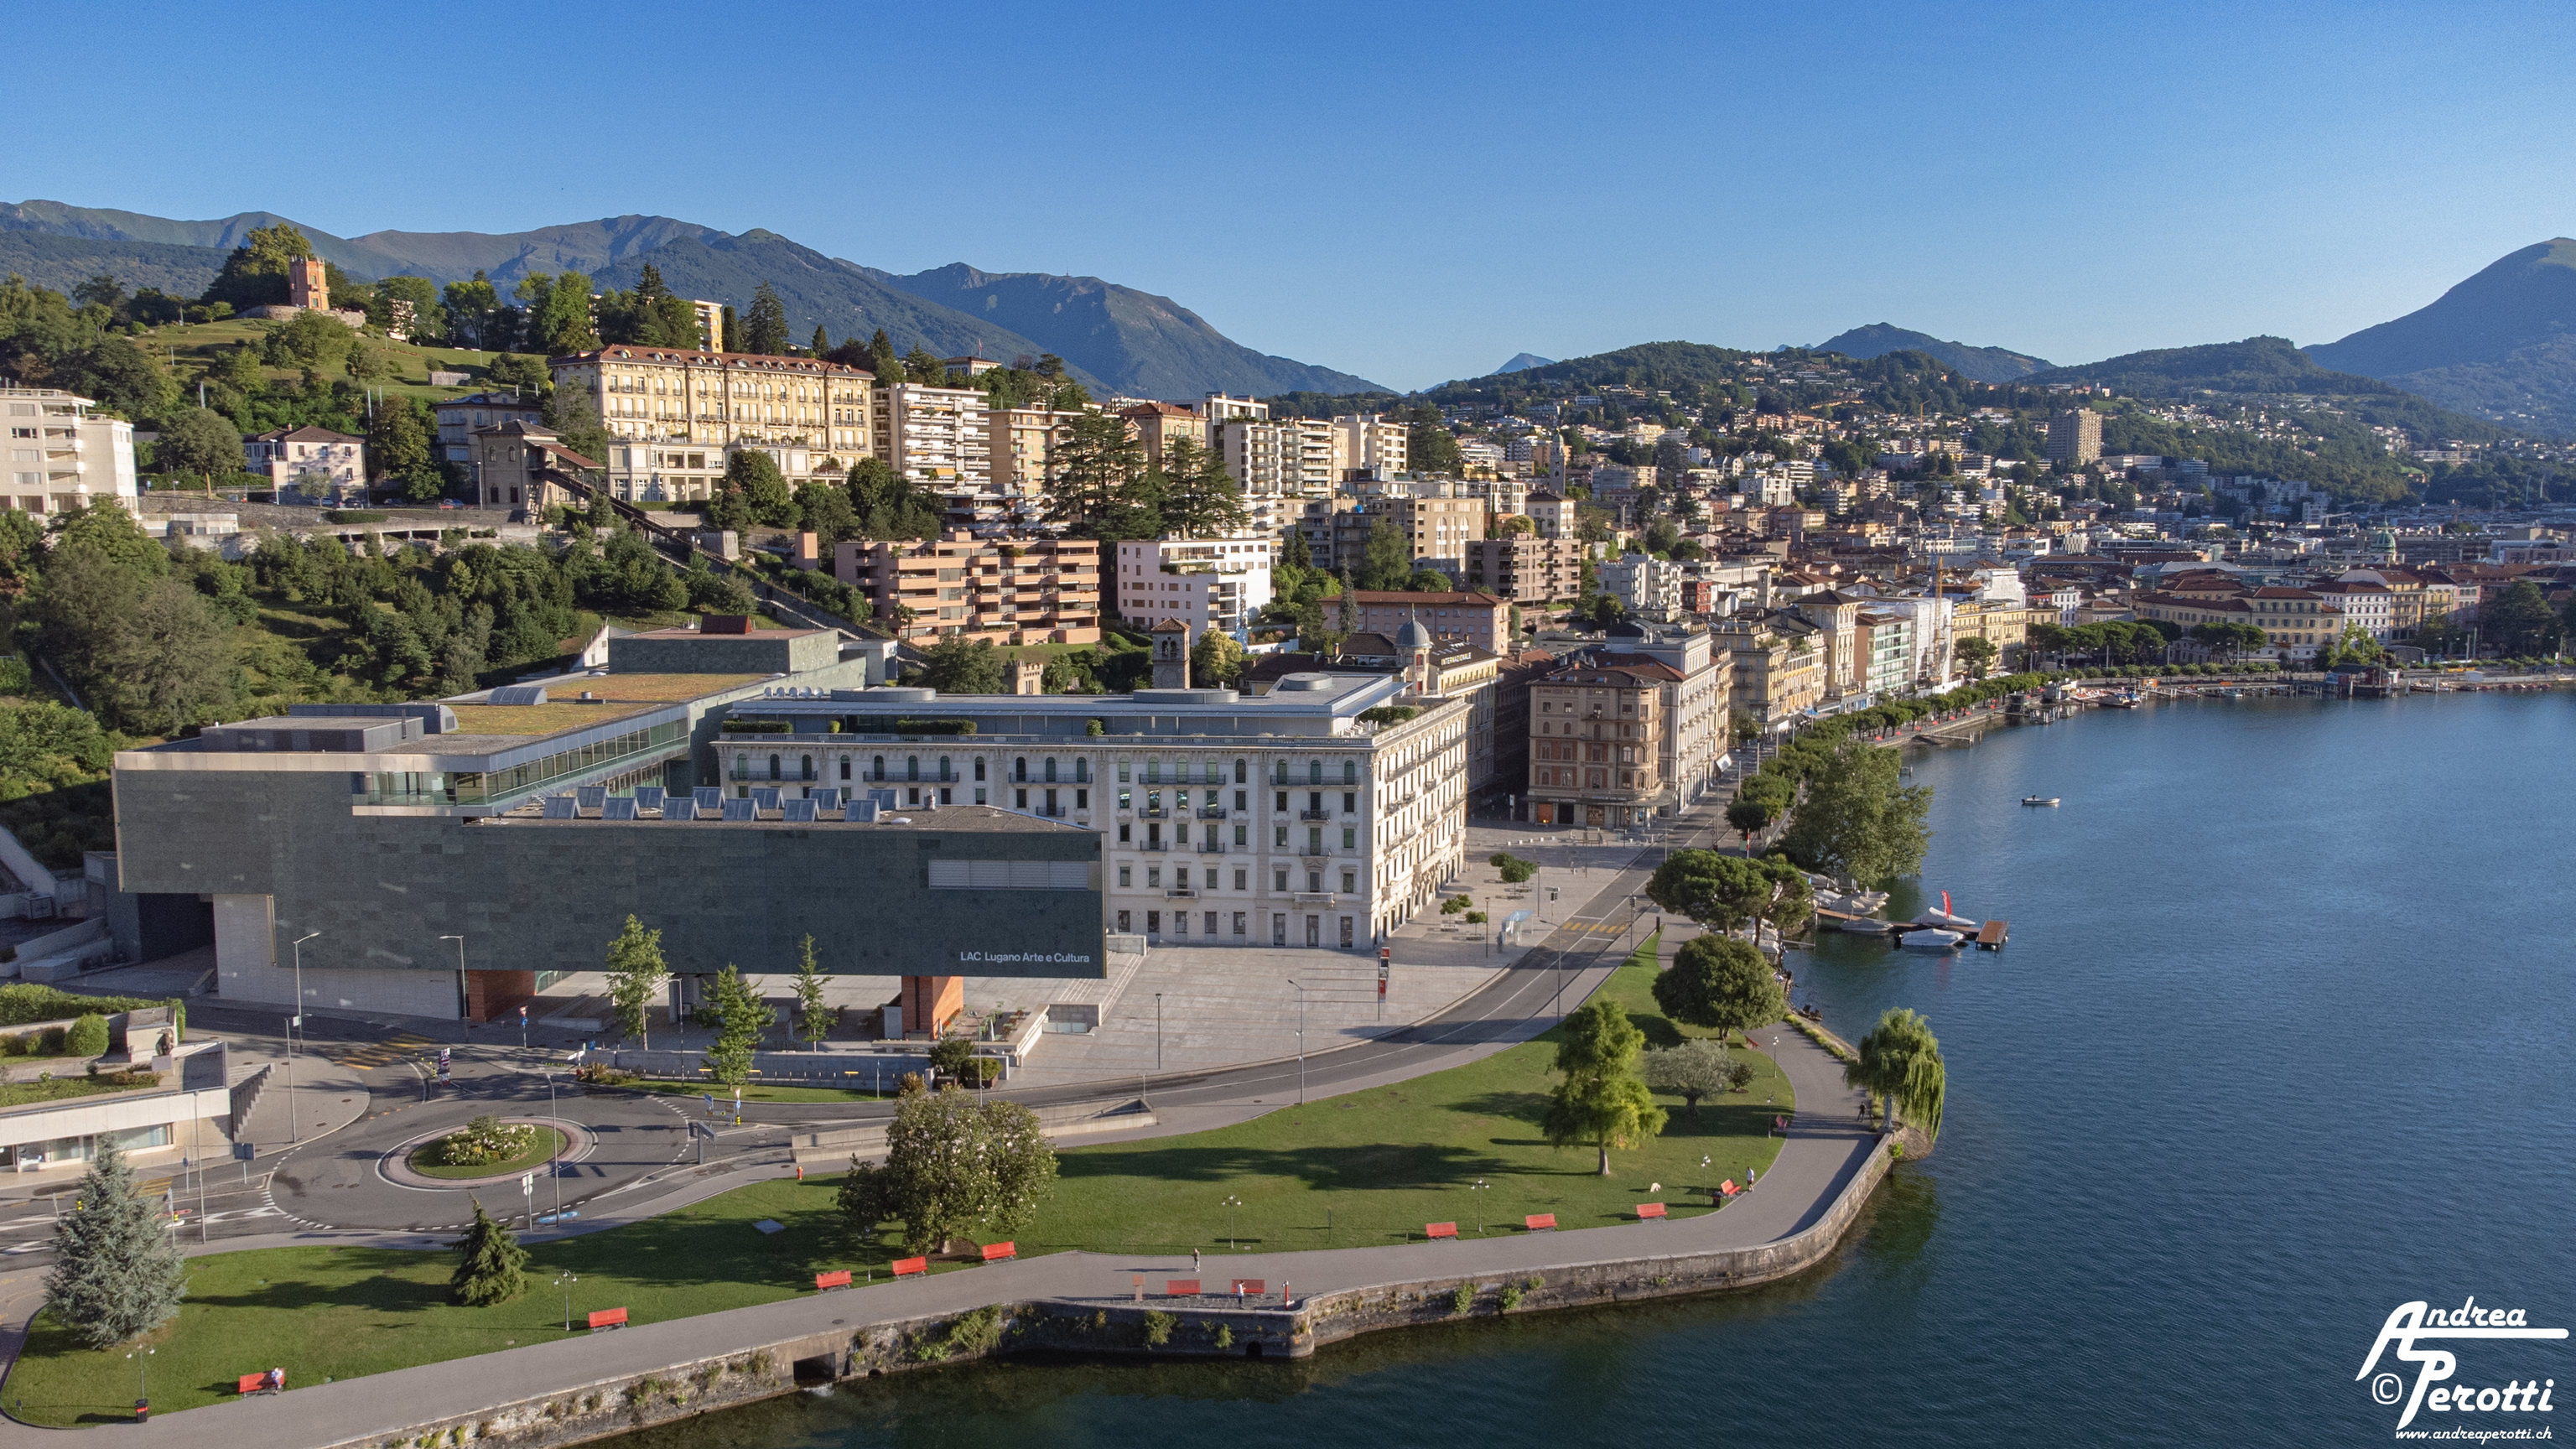 Lugano from drone - 11.07.2021